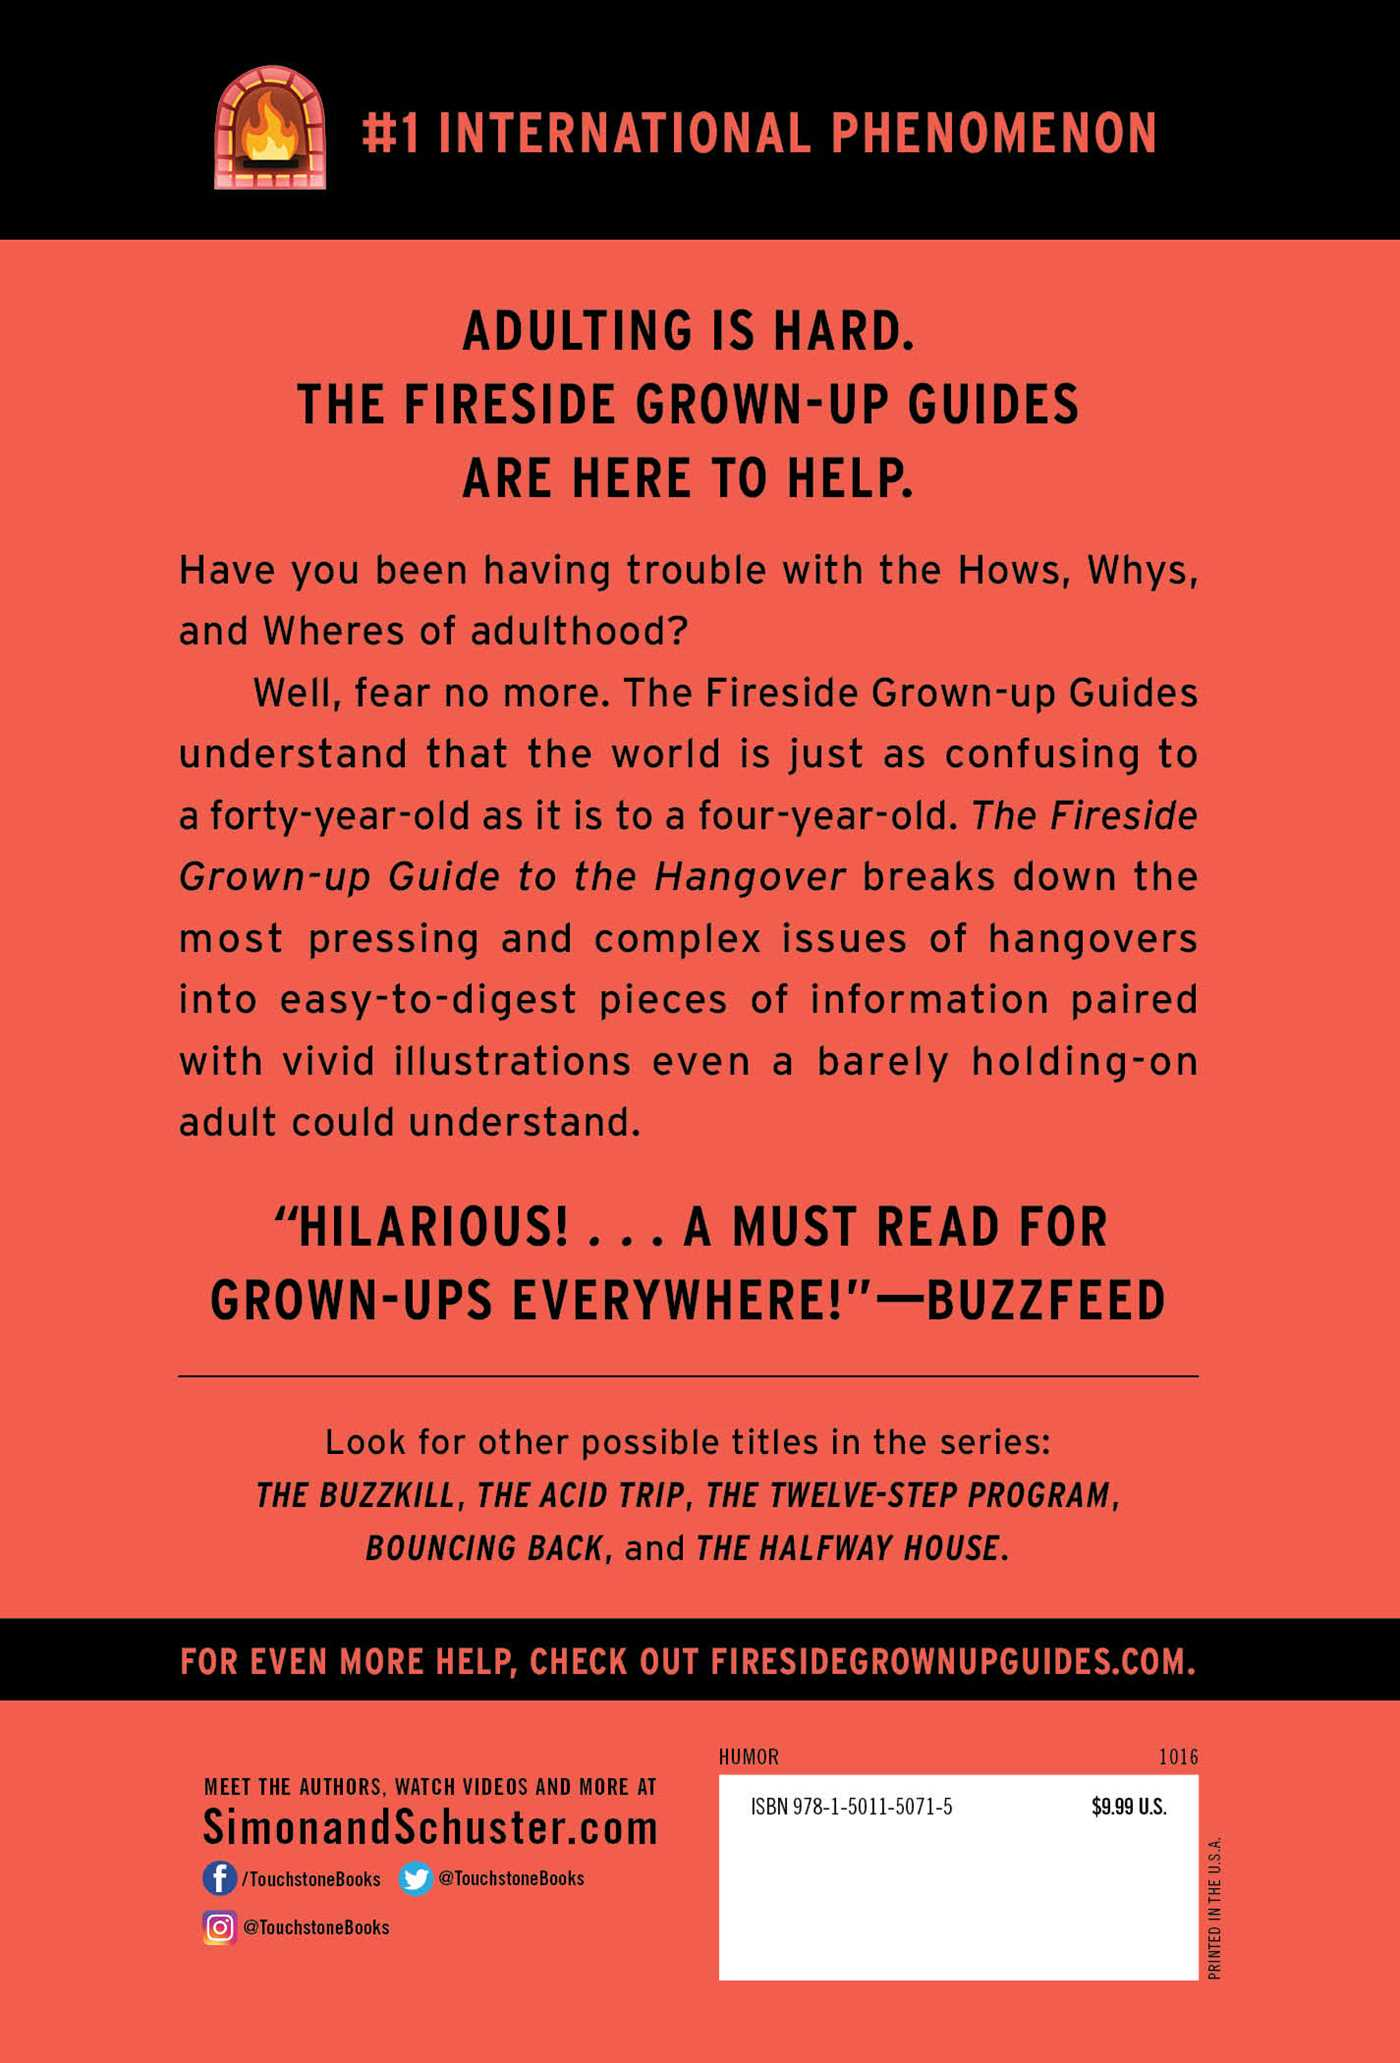 The fireside grown up guide to the hangover 9781501150715 hr back